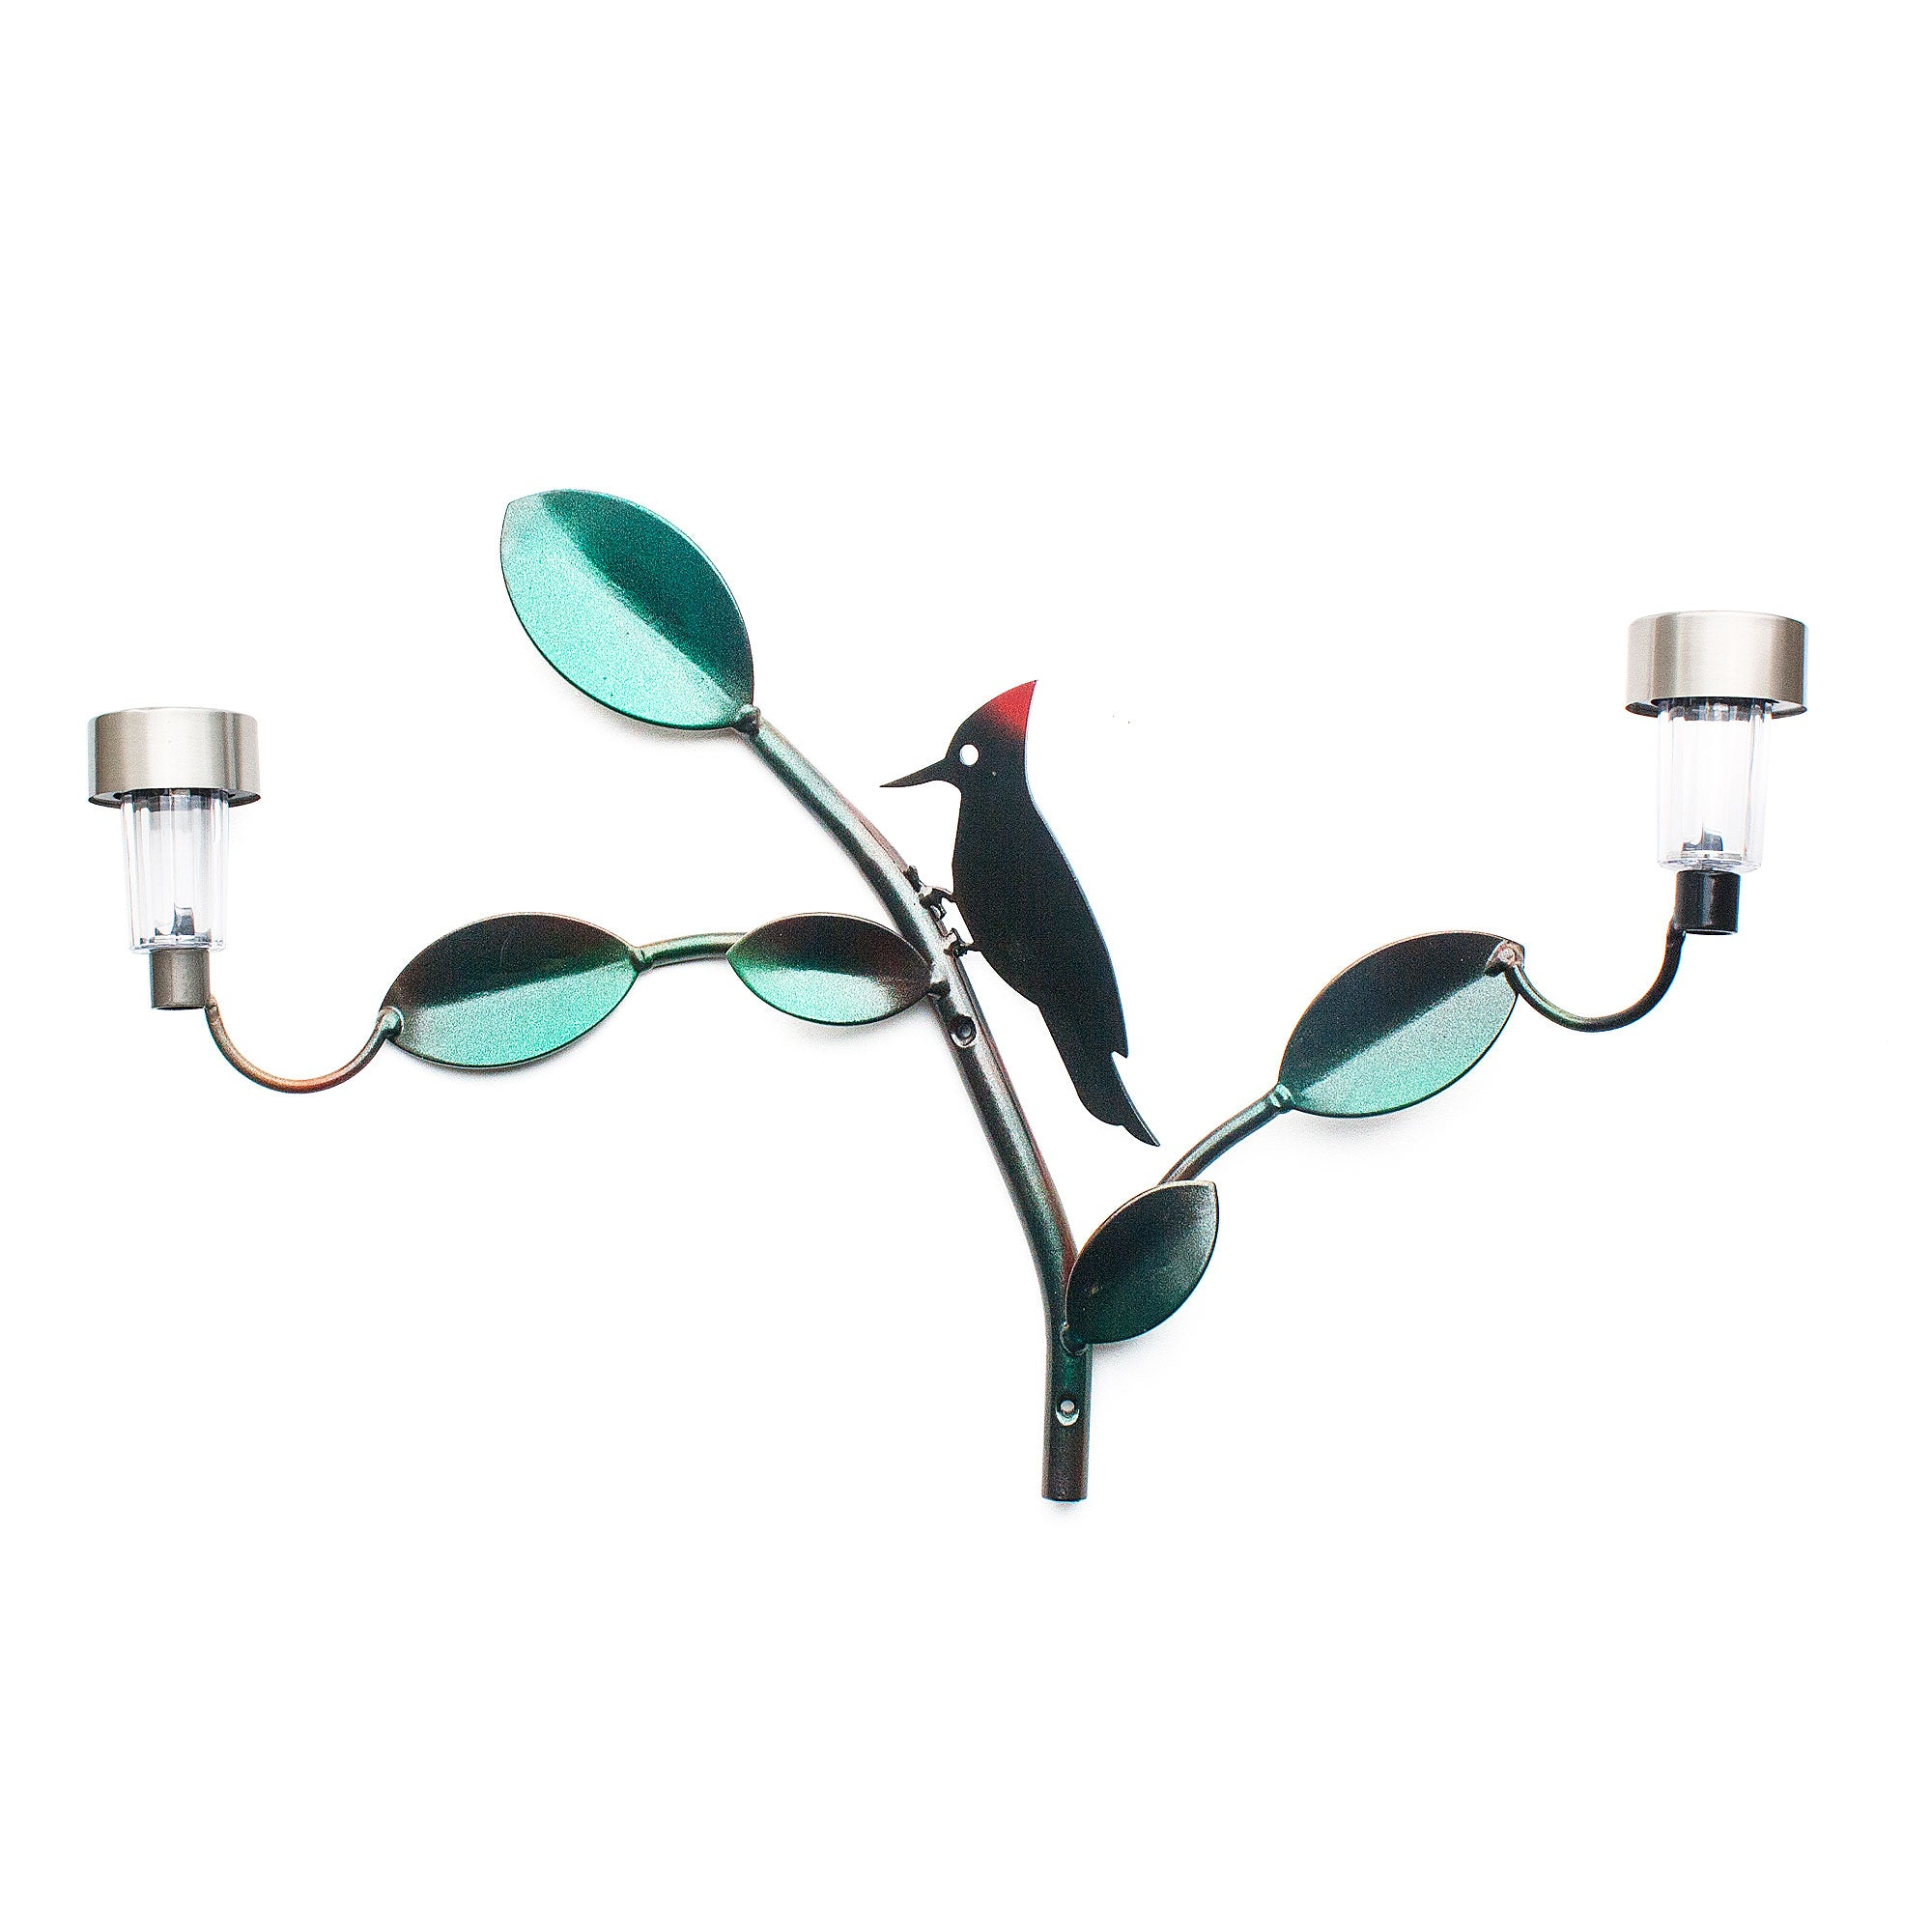 Woodpecker perched garden ornament on Welded Bar Solar Lights